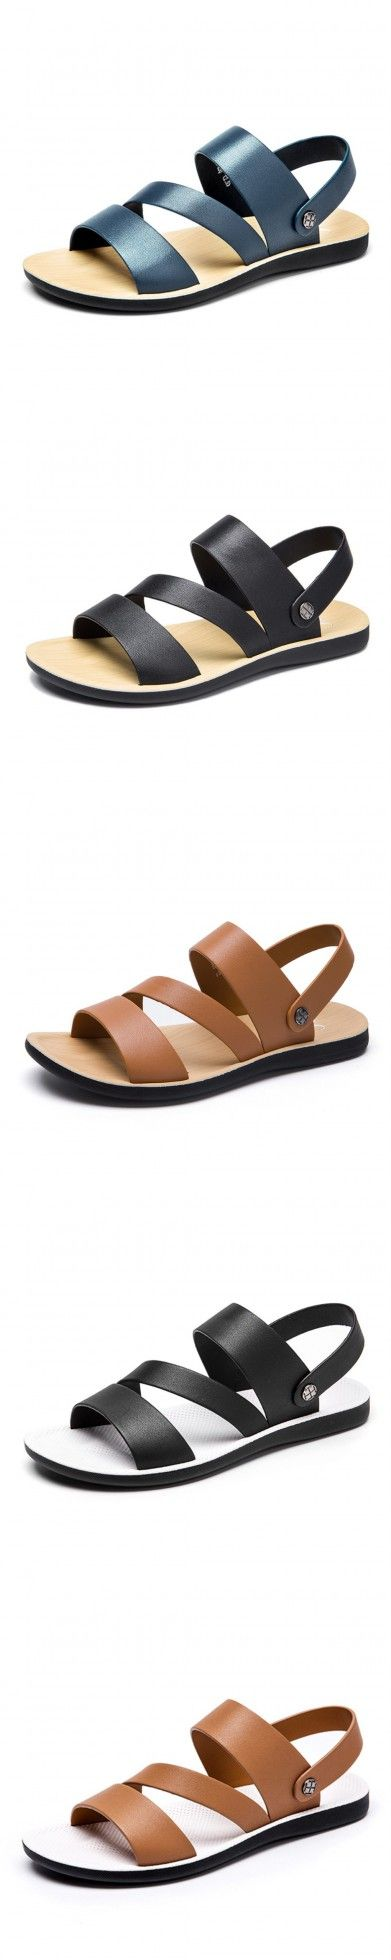 "Golden Even Shoe Summer Sandals Genuine Leather Skid  Breathable Casual Male Sandals ""Cheap Wedge Sandal, Flip-flops United States Of America"" Summer Sandals Genuine Leather Skid  Breathable Casual Male Sandals."